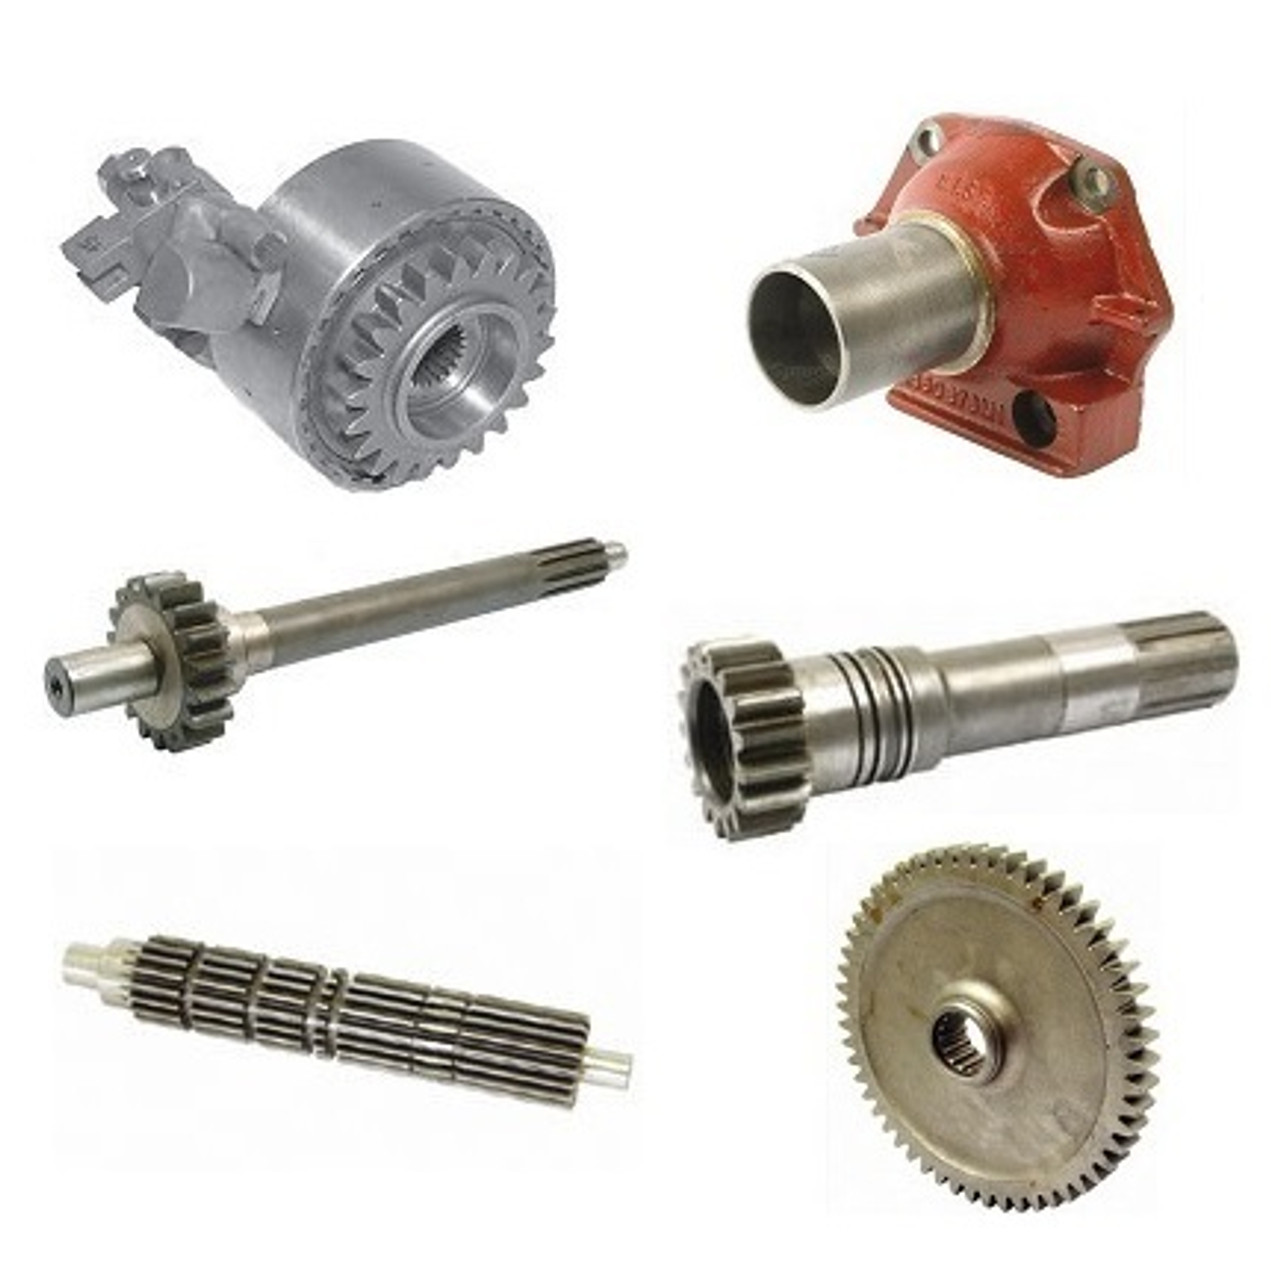 Transmission and PTO Parts